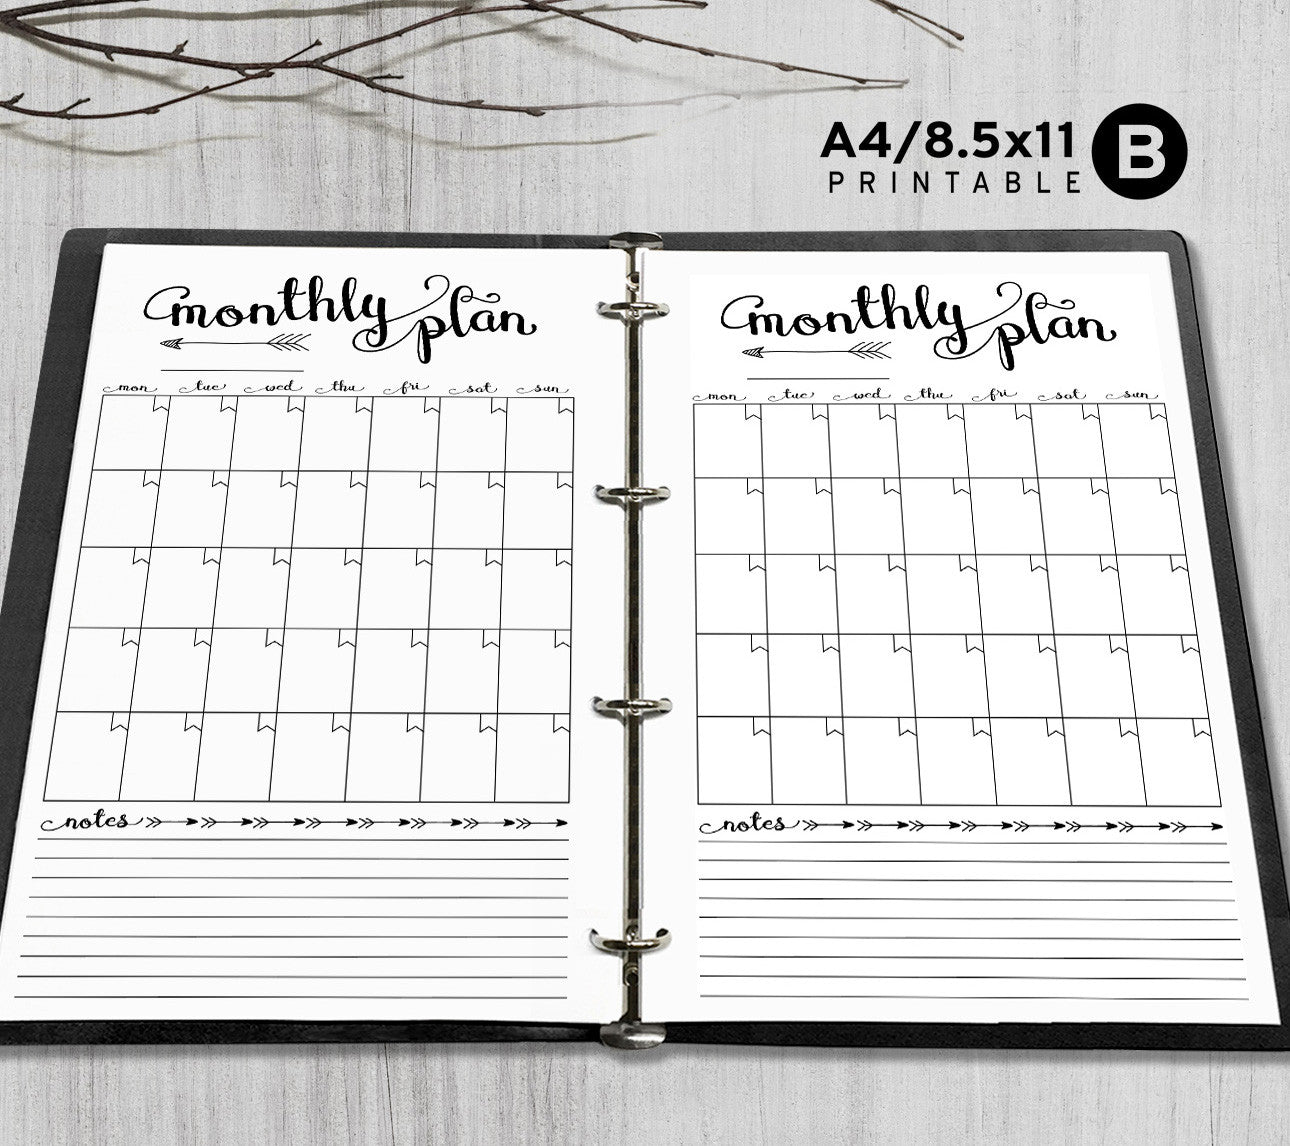 printable a4 letter monthly planner inserts a4 letter binder